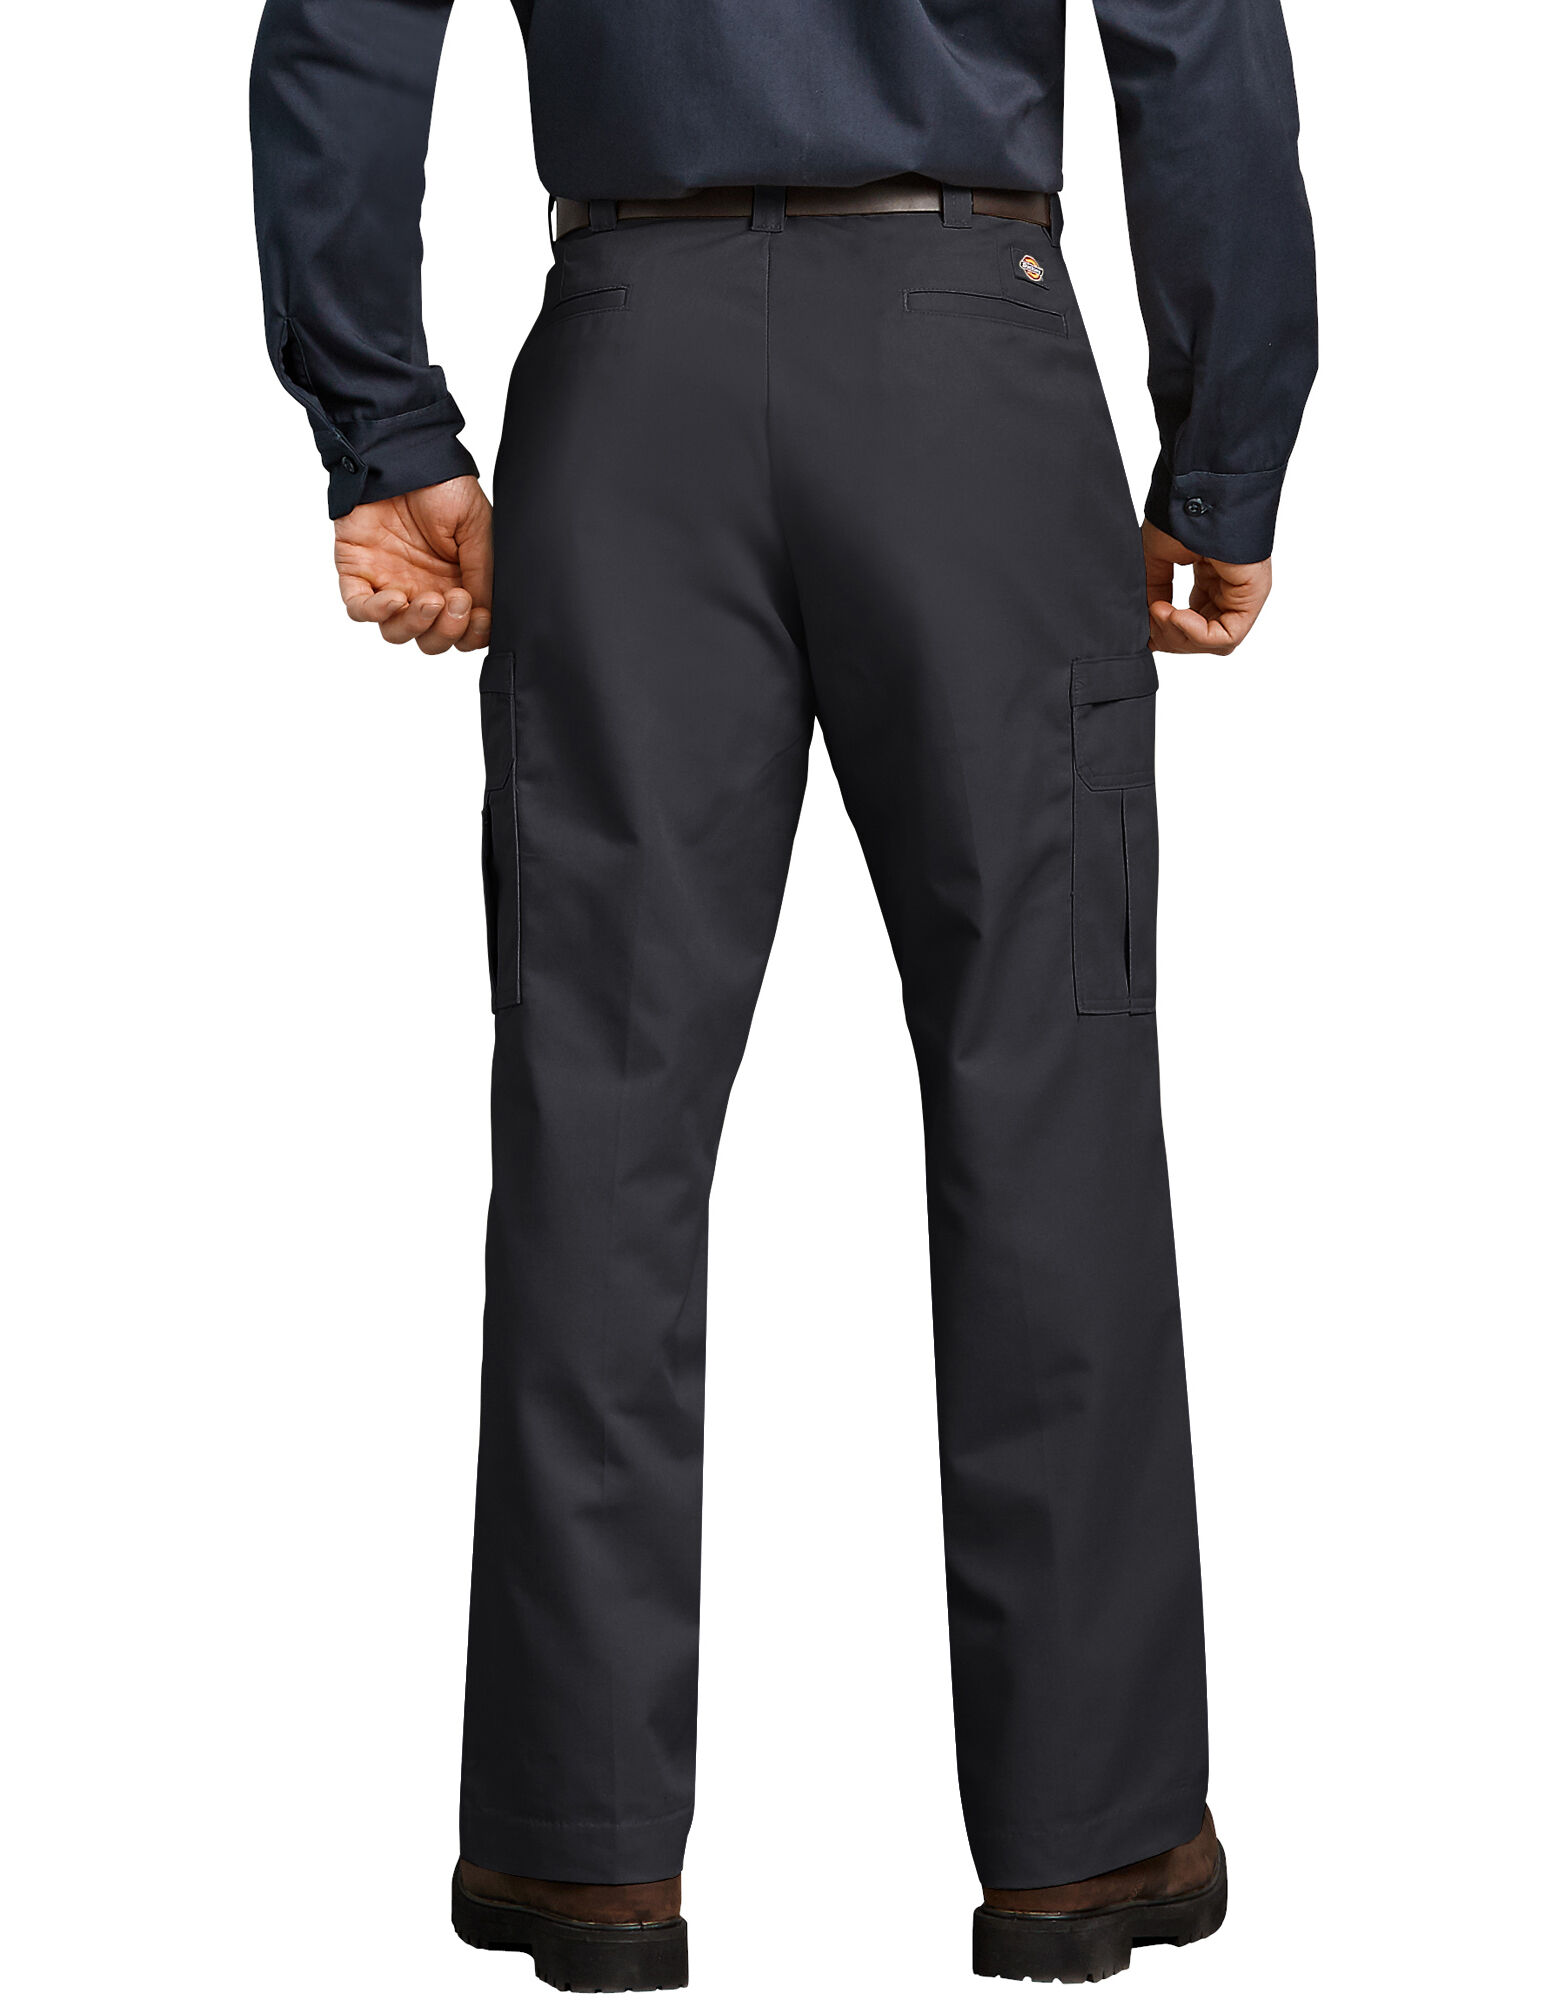 Industrial Relaxed Fit Cargo Pant For Men   Dickies